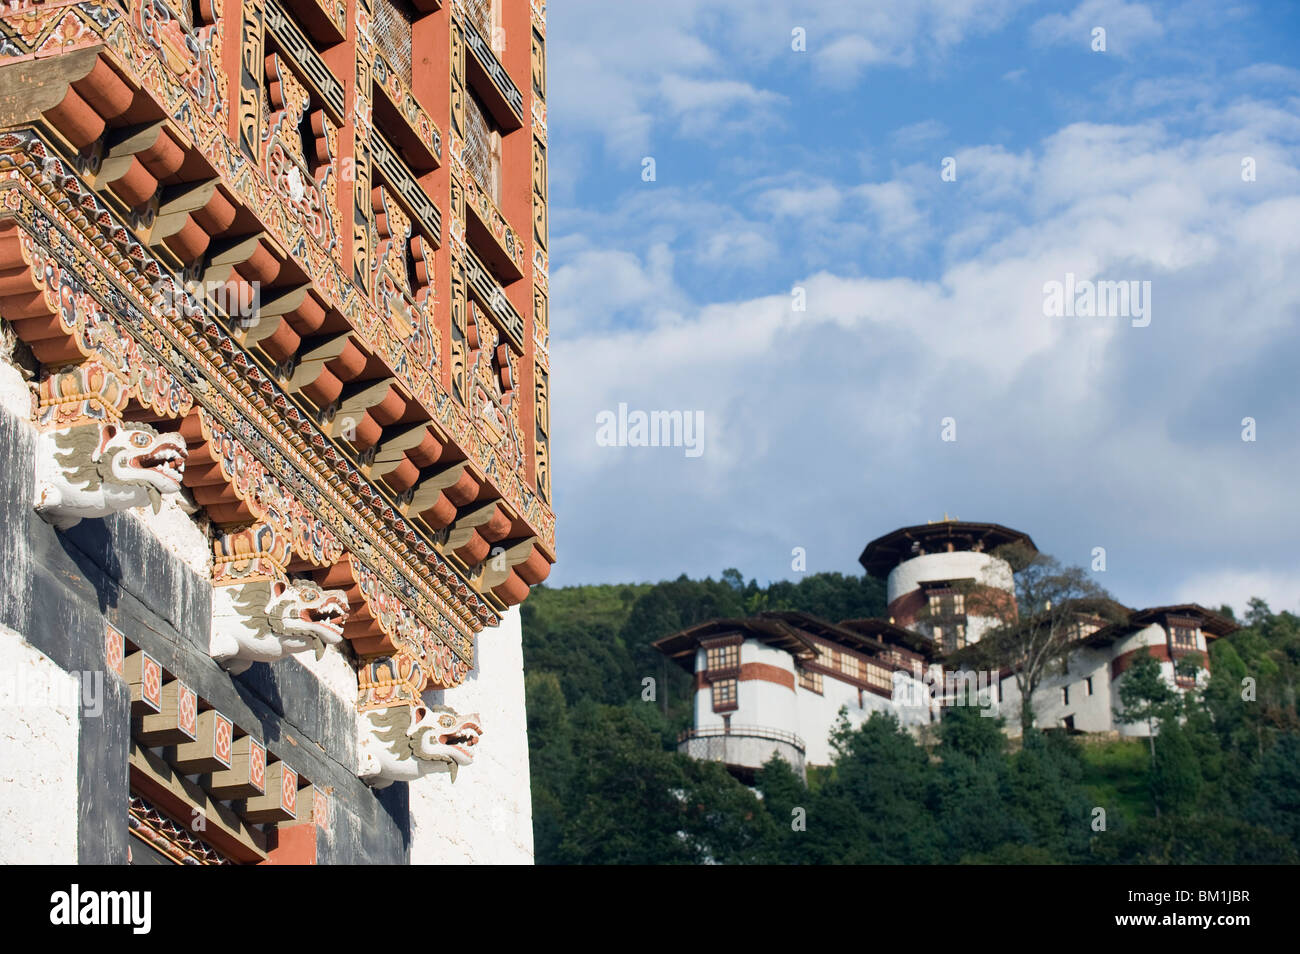 Watch tower at Trongsa Dzong (Chokhor Raptentse), dating from 1648, Bhutan, Asia - Stock Image